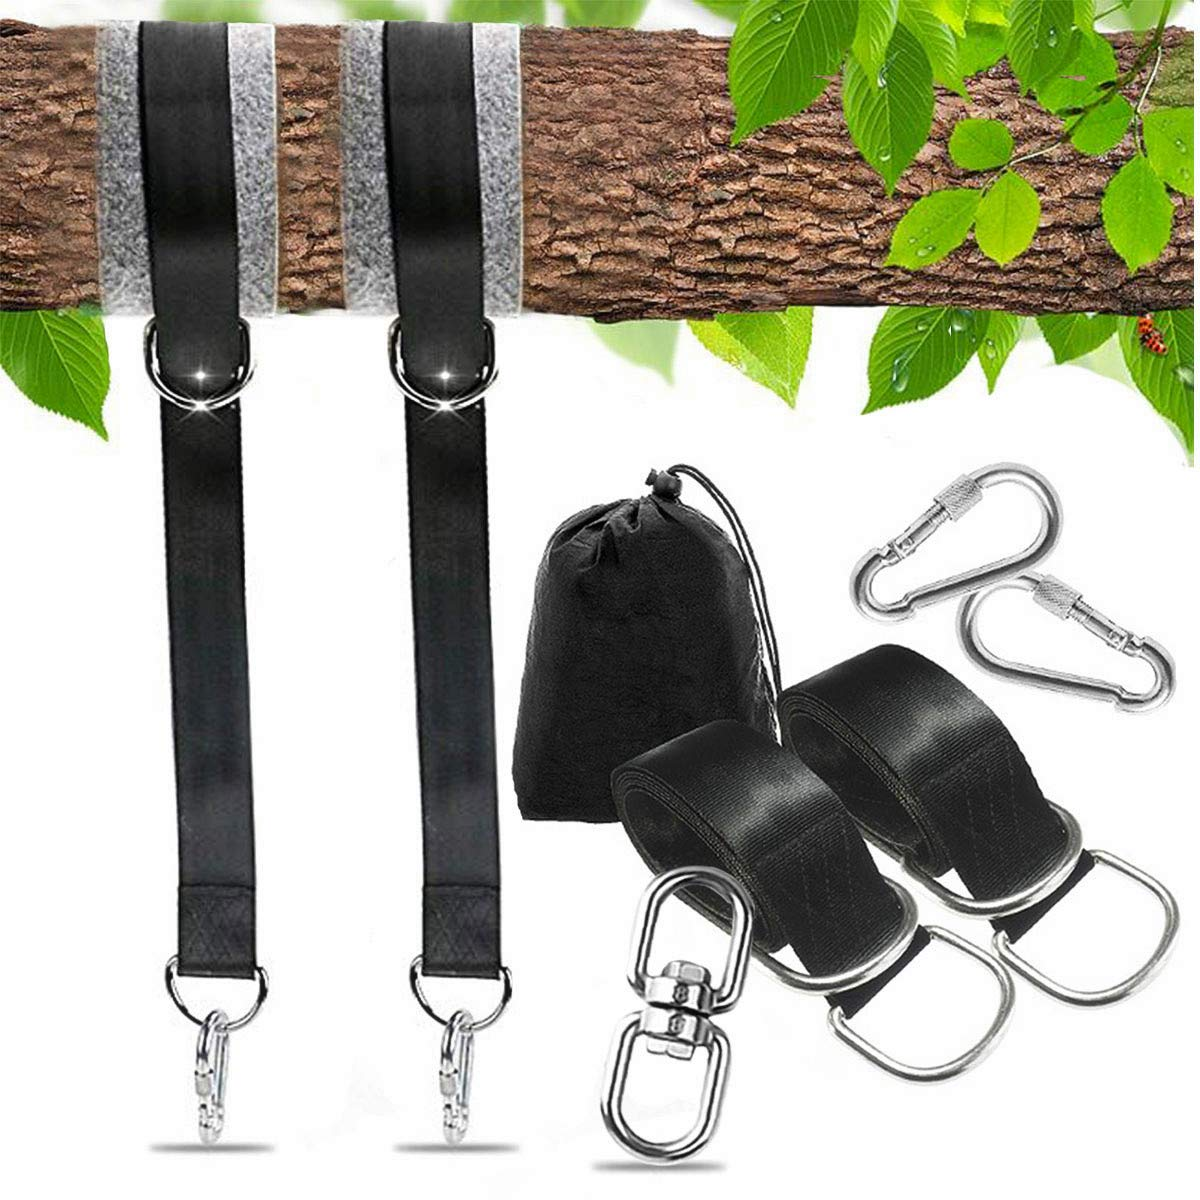 Tree Swing Straps Adjustable 5foot Hanging Kit Holds 1100lbs Heavy Duty Carabiners,Bonus Spinner,Tree Saver Protector Pads,Perfect for Tire and Saucer Swings, Child Swing,Hammock, Swing Sets